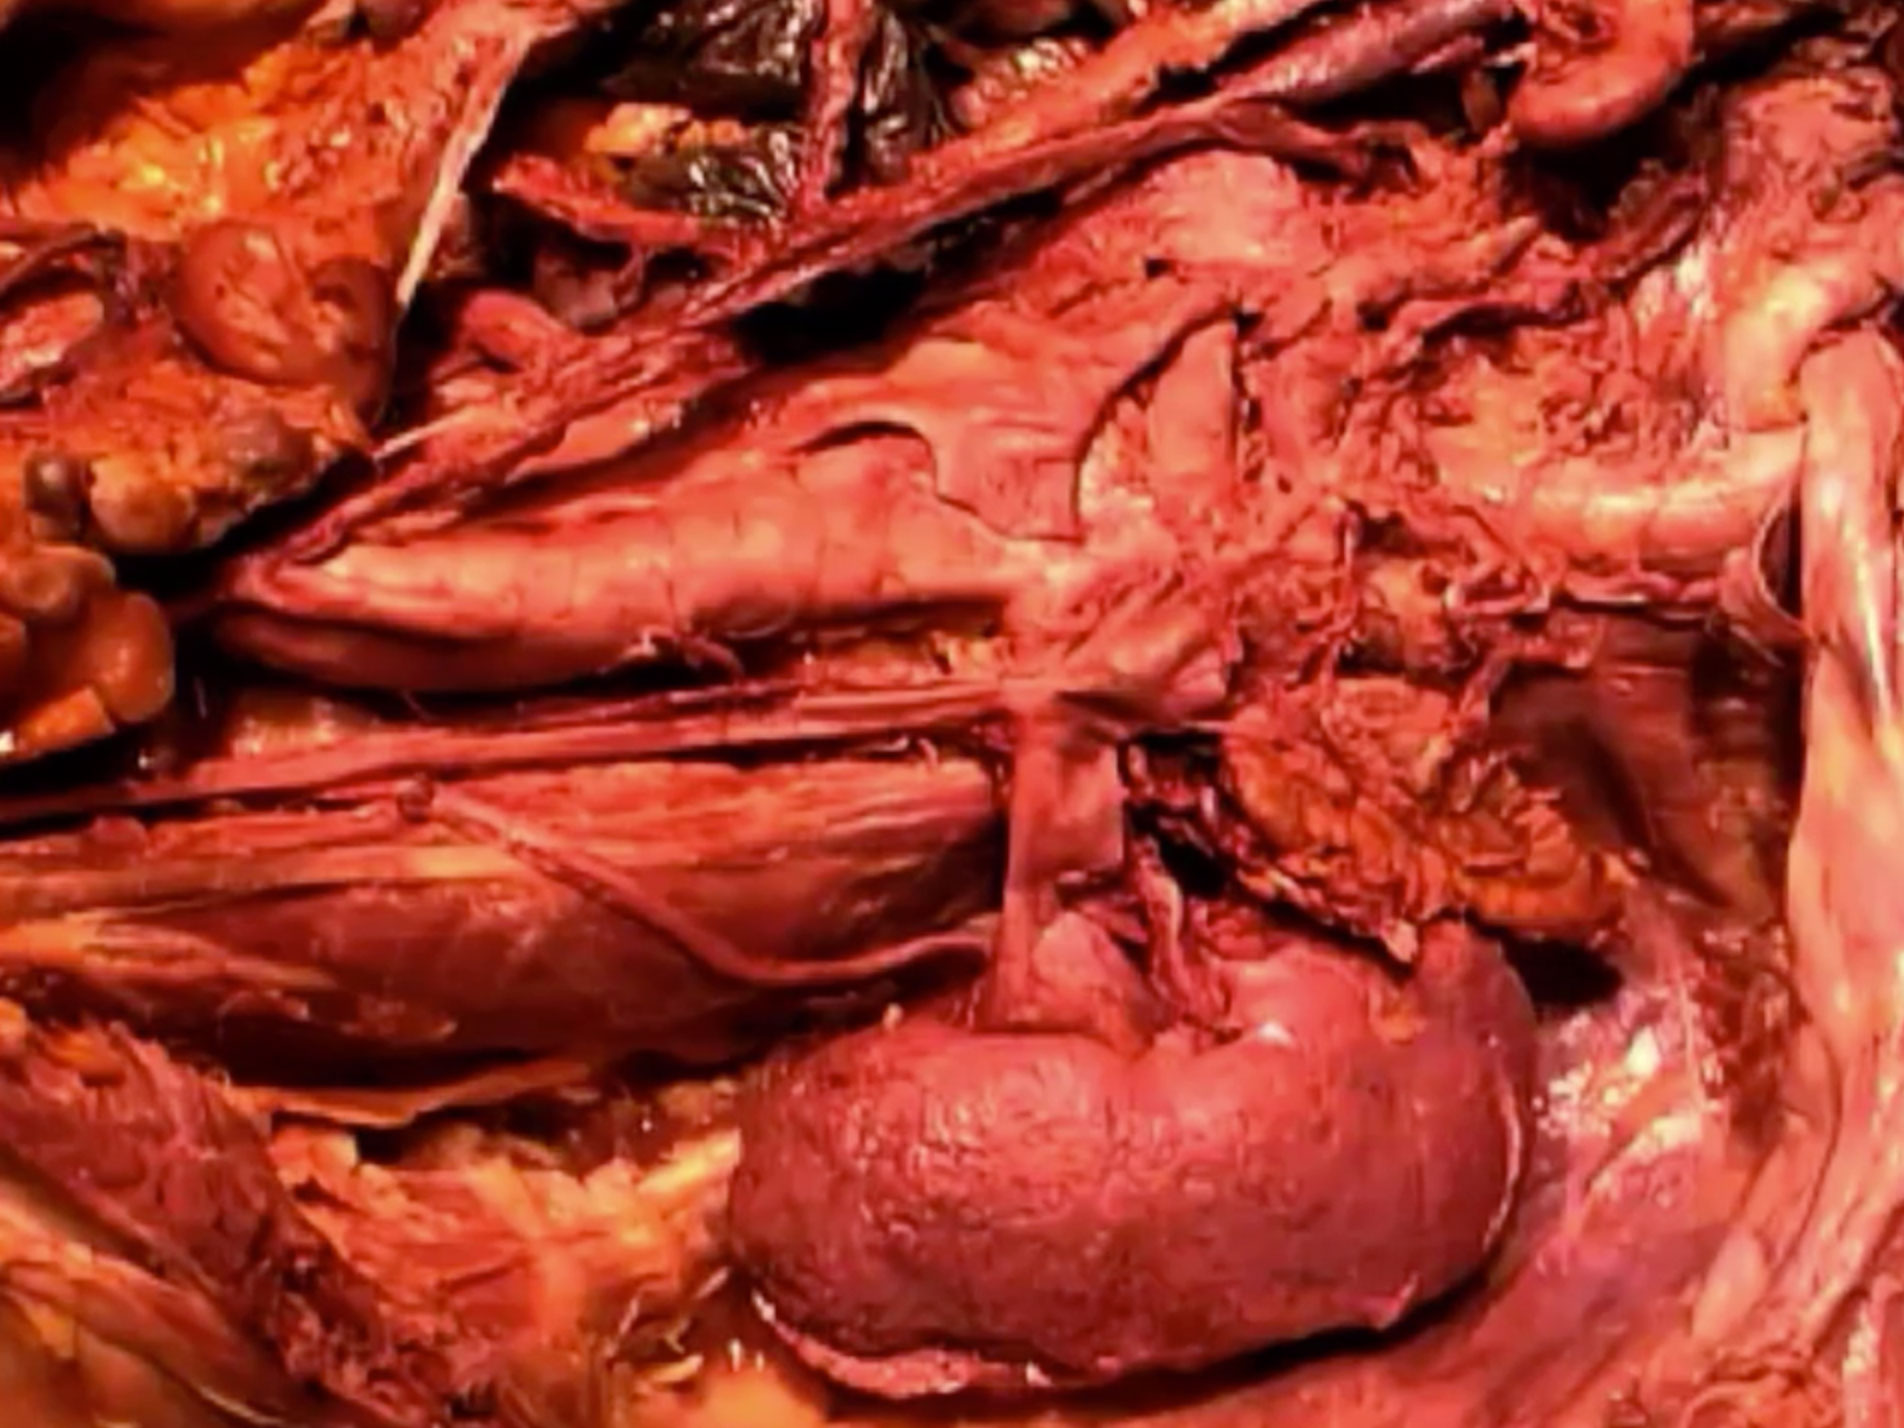 Gross Anatomy Dissections - SMPH Video Library